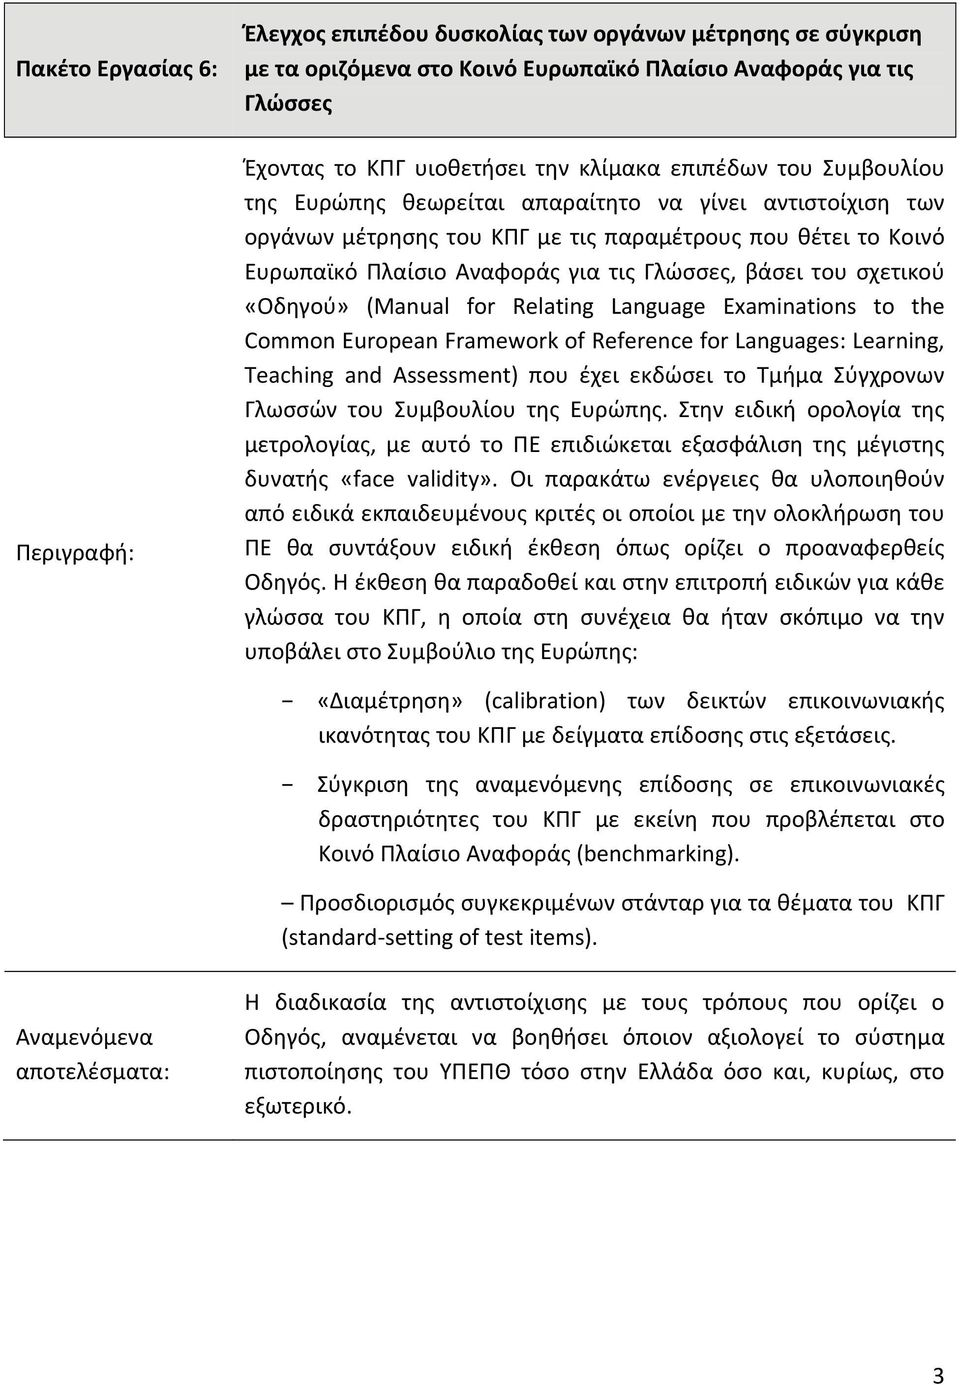 σχετικού «Οδηγού» (Manual for Relating Language Examinations to the Common European Framework of Reference for Languages: Learning, Teaching and Assessment) που έχει εκδώσει το Τμήμα Σύγχρονων